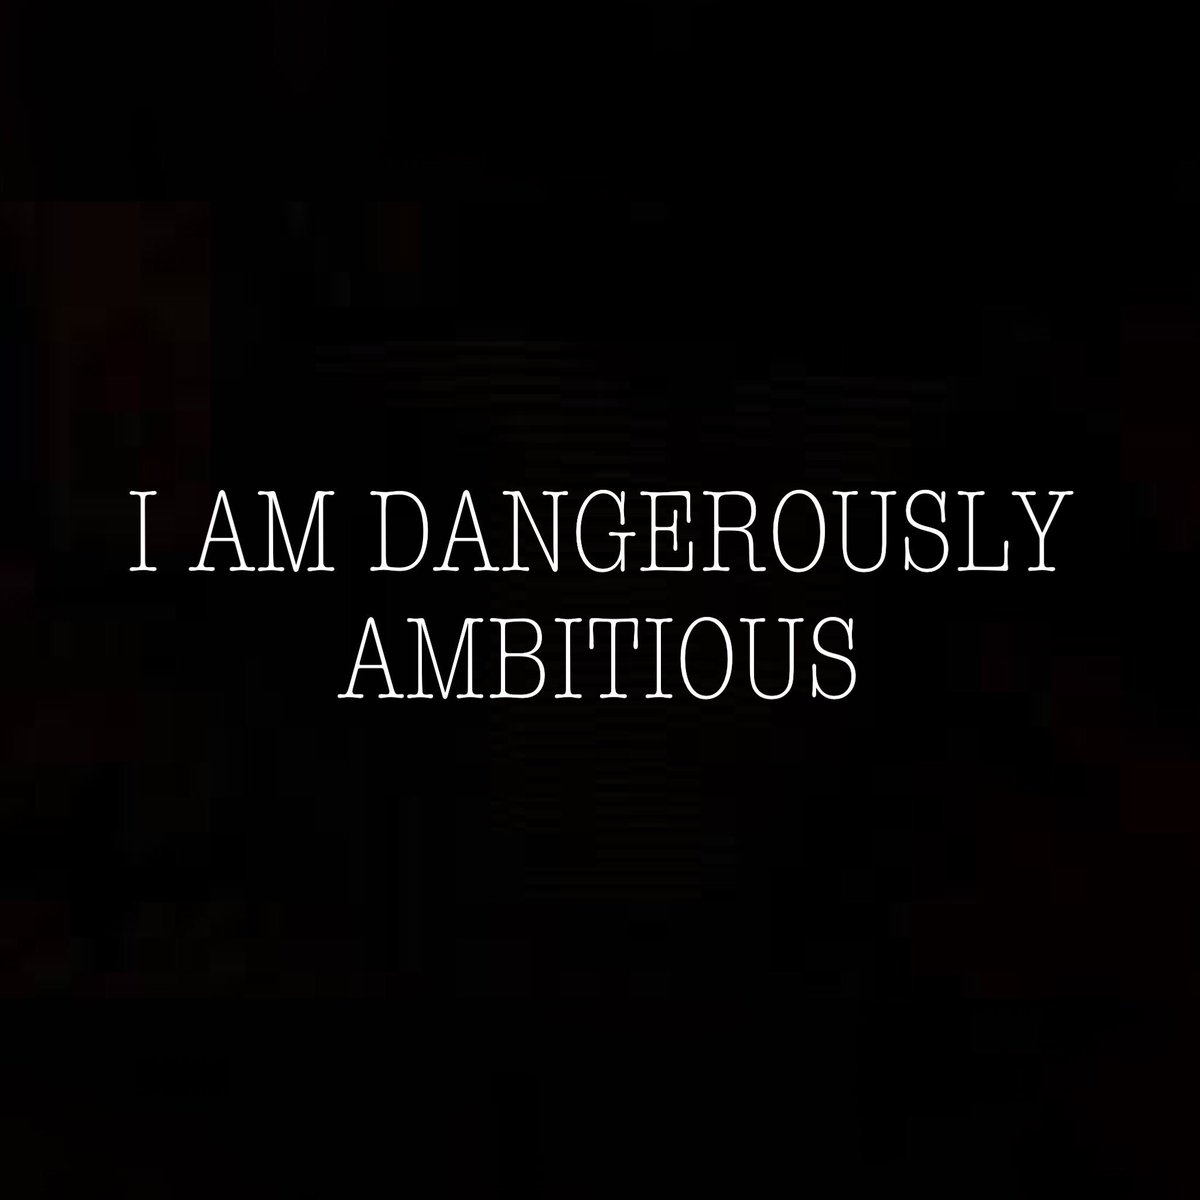 Haven&#39;t read my blog. Just a click away  http:// Dangerouslyambitious.Wordpress.Com  &nbsp;    #blogger @wordpressdotcom #blog #writer #powerful #amazing #share <br>http://pic.twitter.com/Qcx06yiwXd